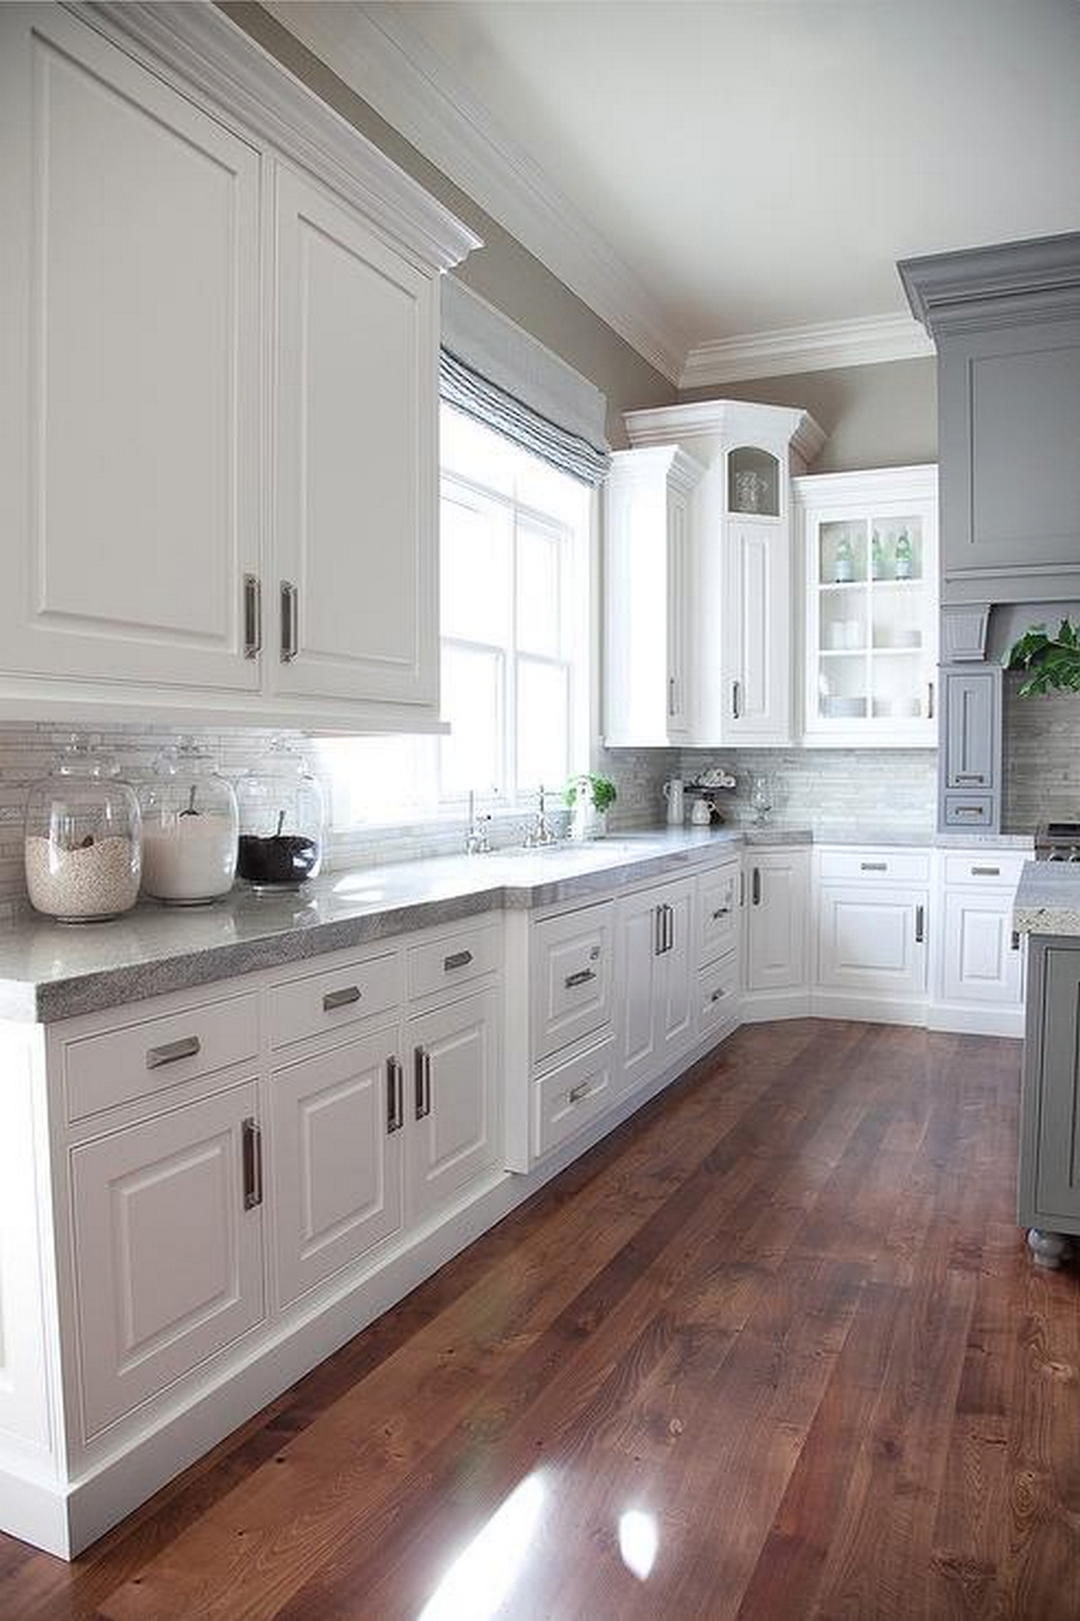 Why White Kitchen Interior Is Still Great For 2019 | White Kitchen Interior, Kitchen Design, Transitional Kitchen Design